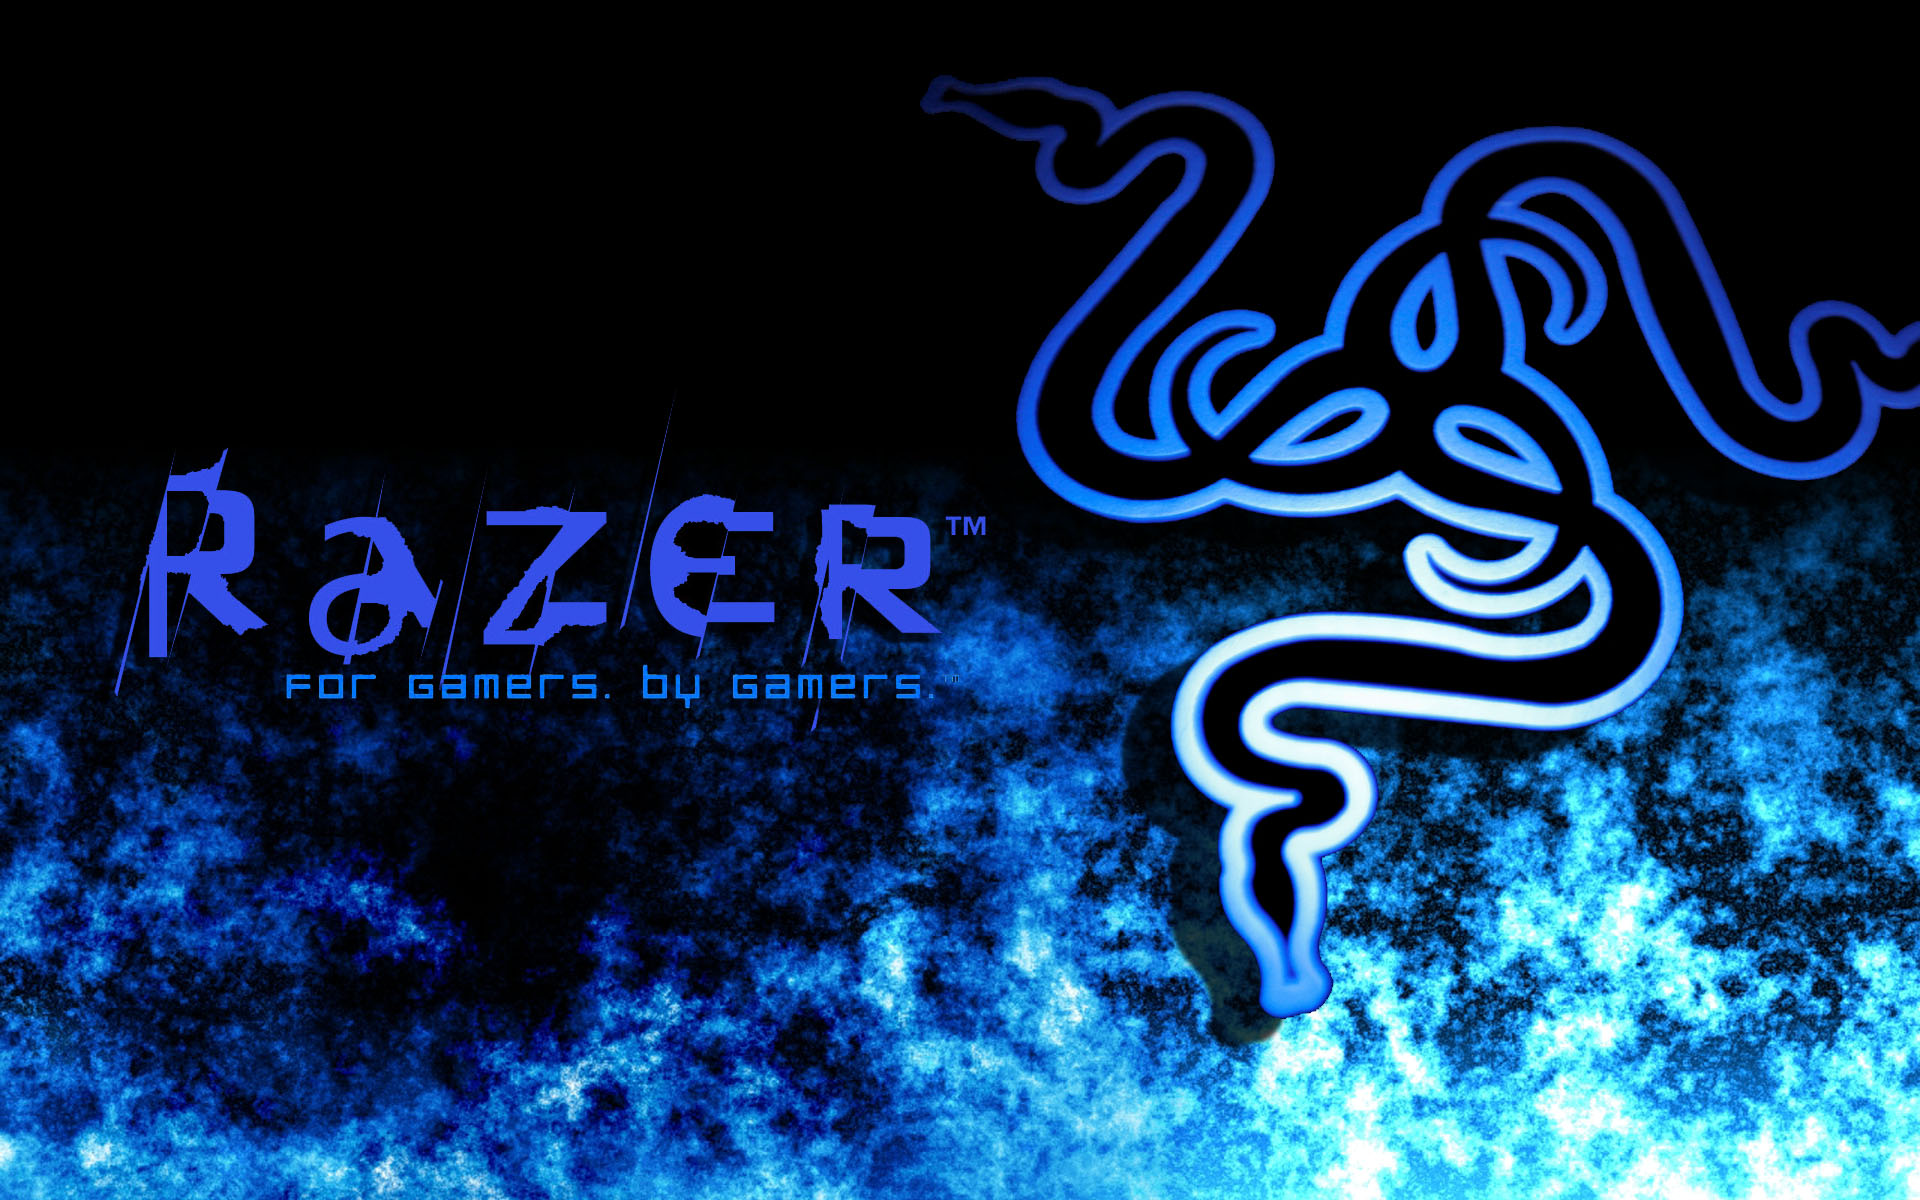 Razer Blue Wallpapers Products Hq Razer Blue Pictures 4k Wallpapers 2019